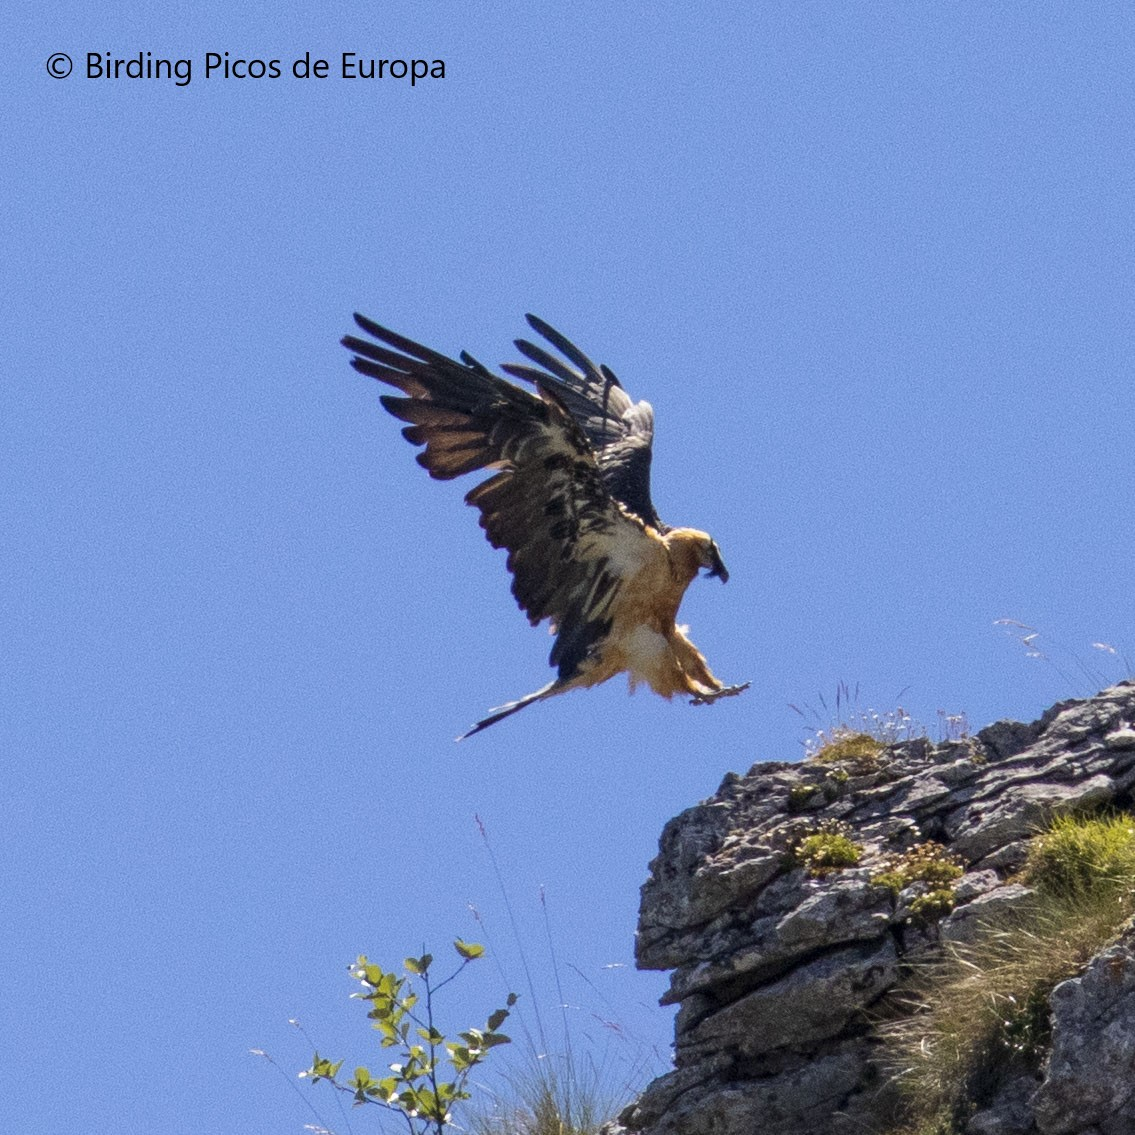 The Bearded Vulture